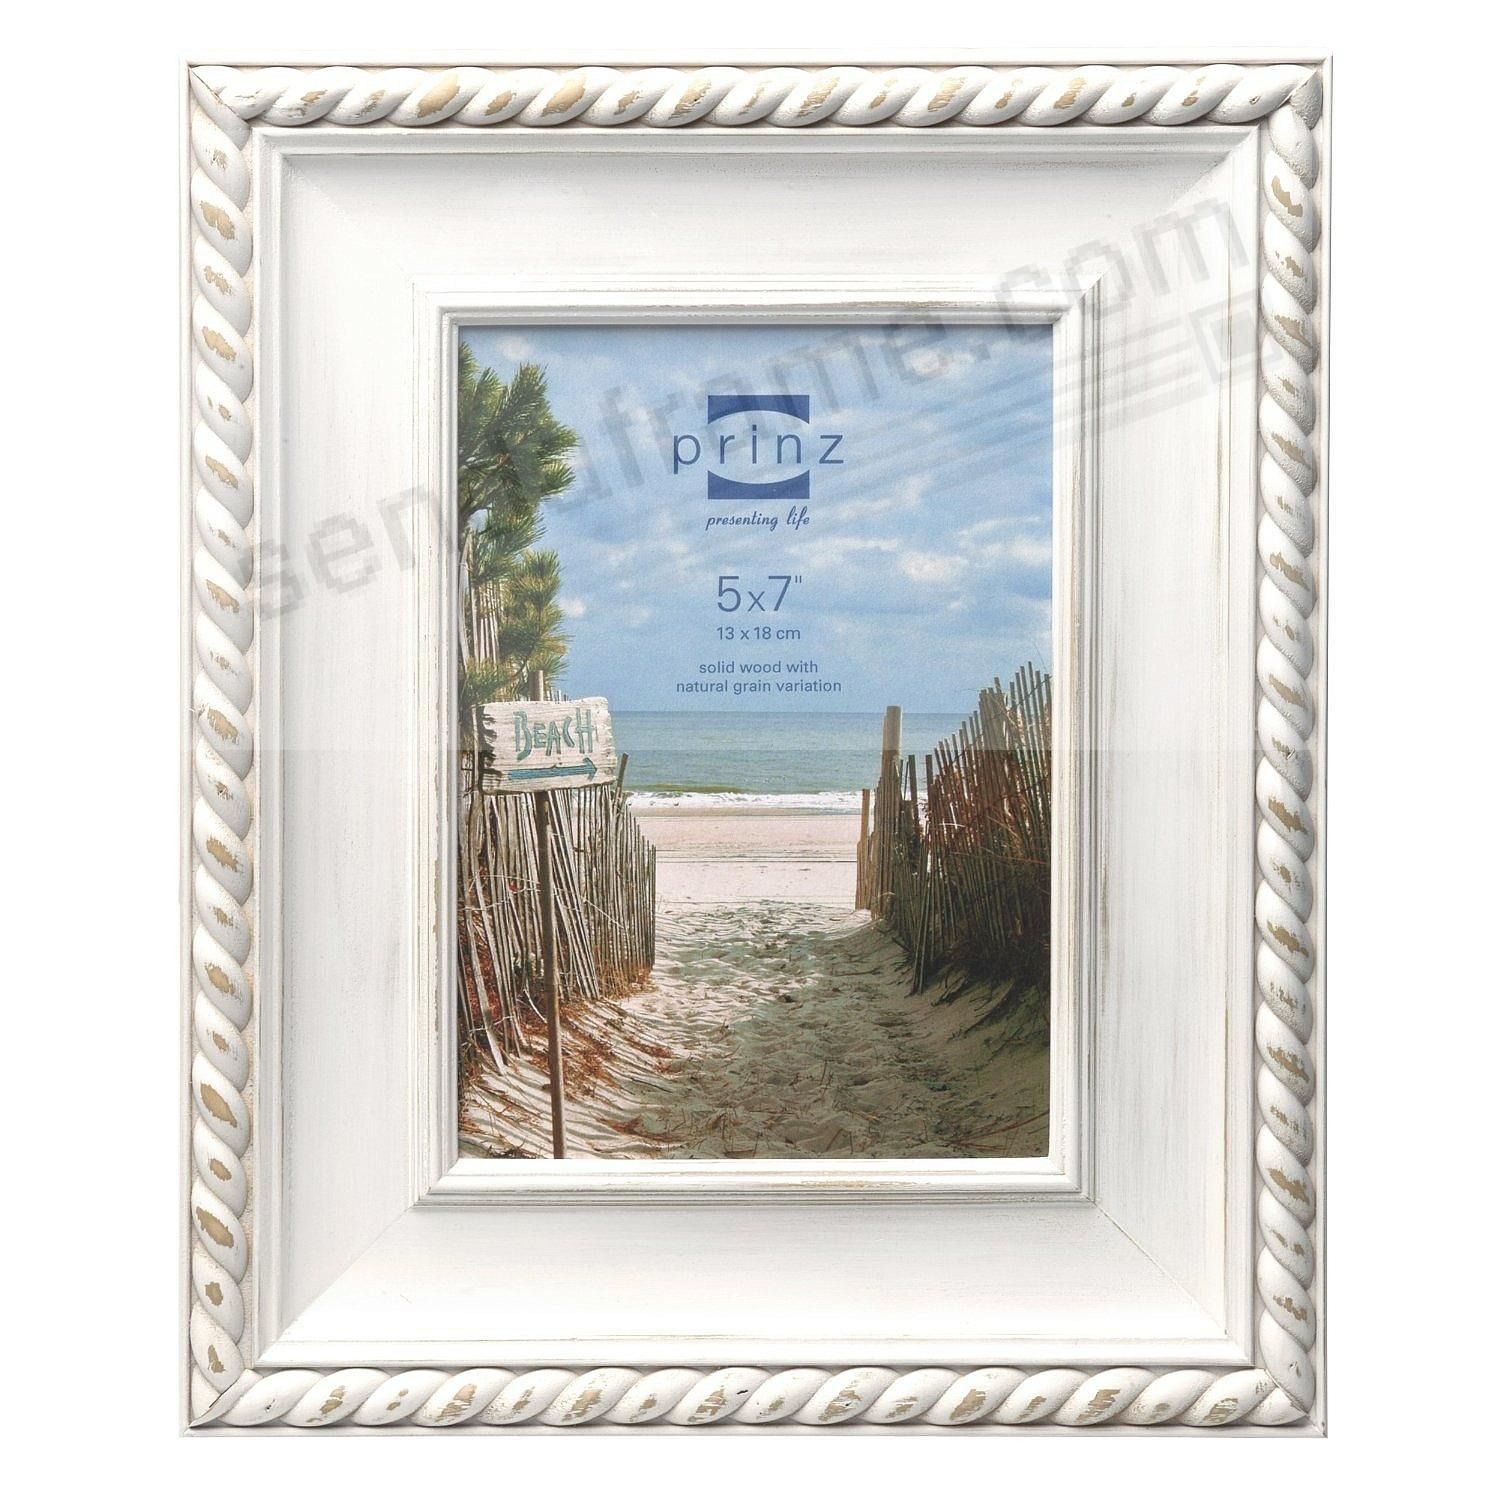 Eastport weathered white wood 5x7 frame with rope detail by prinz eastport weathered white wood 5x7 frame with rope detail by prinz jeuxipadfo Choice Image